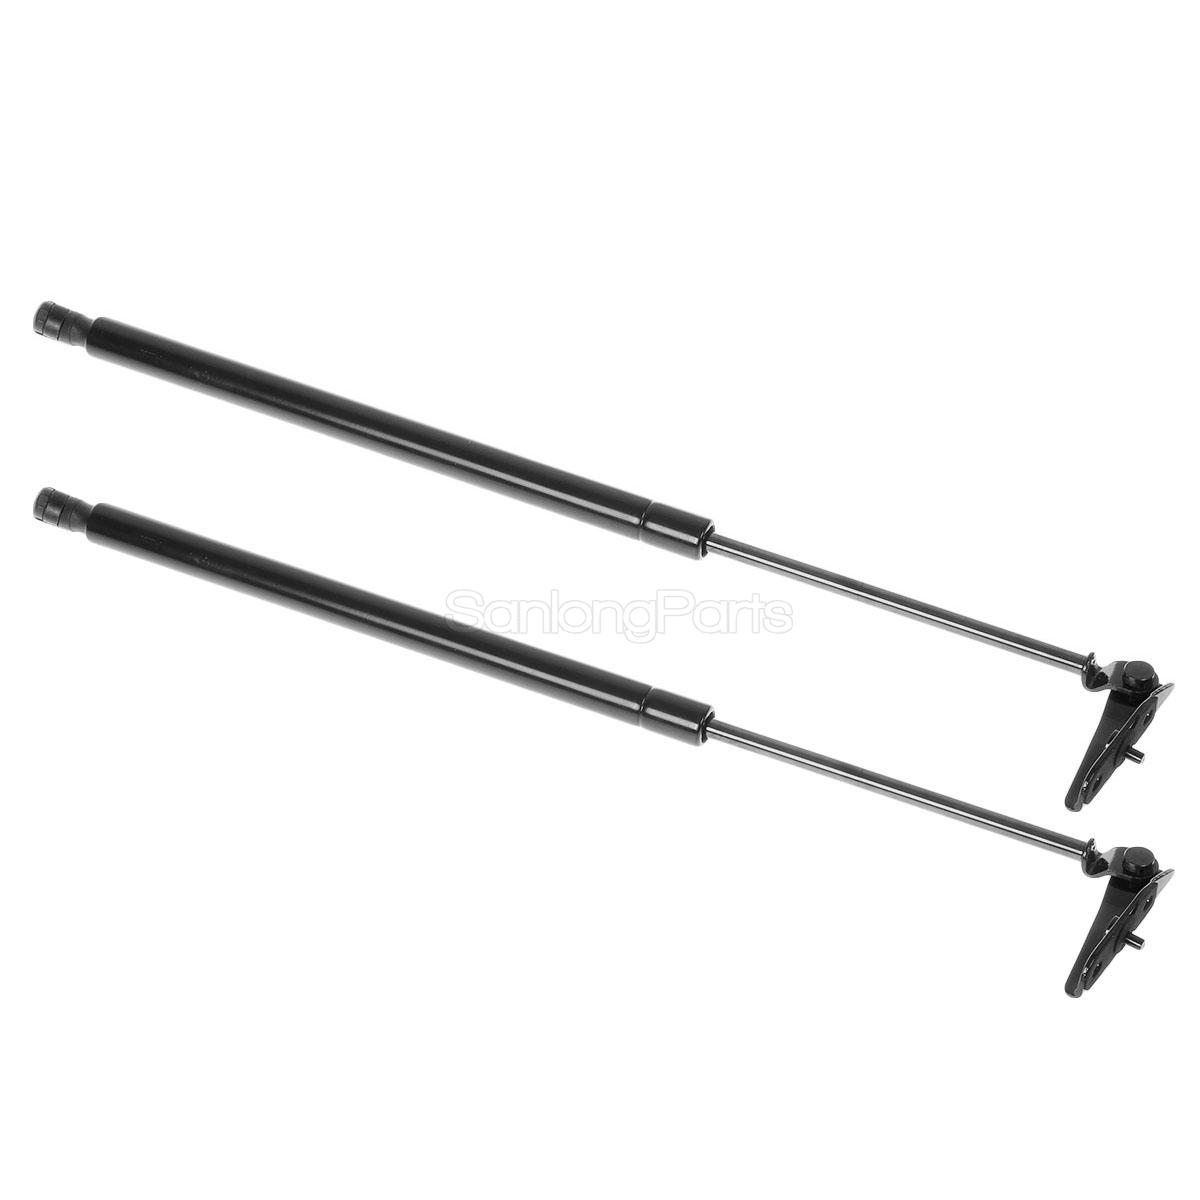 1pair Rear Hatch Lift Supports Shocks Struts Fits